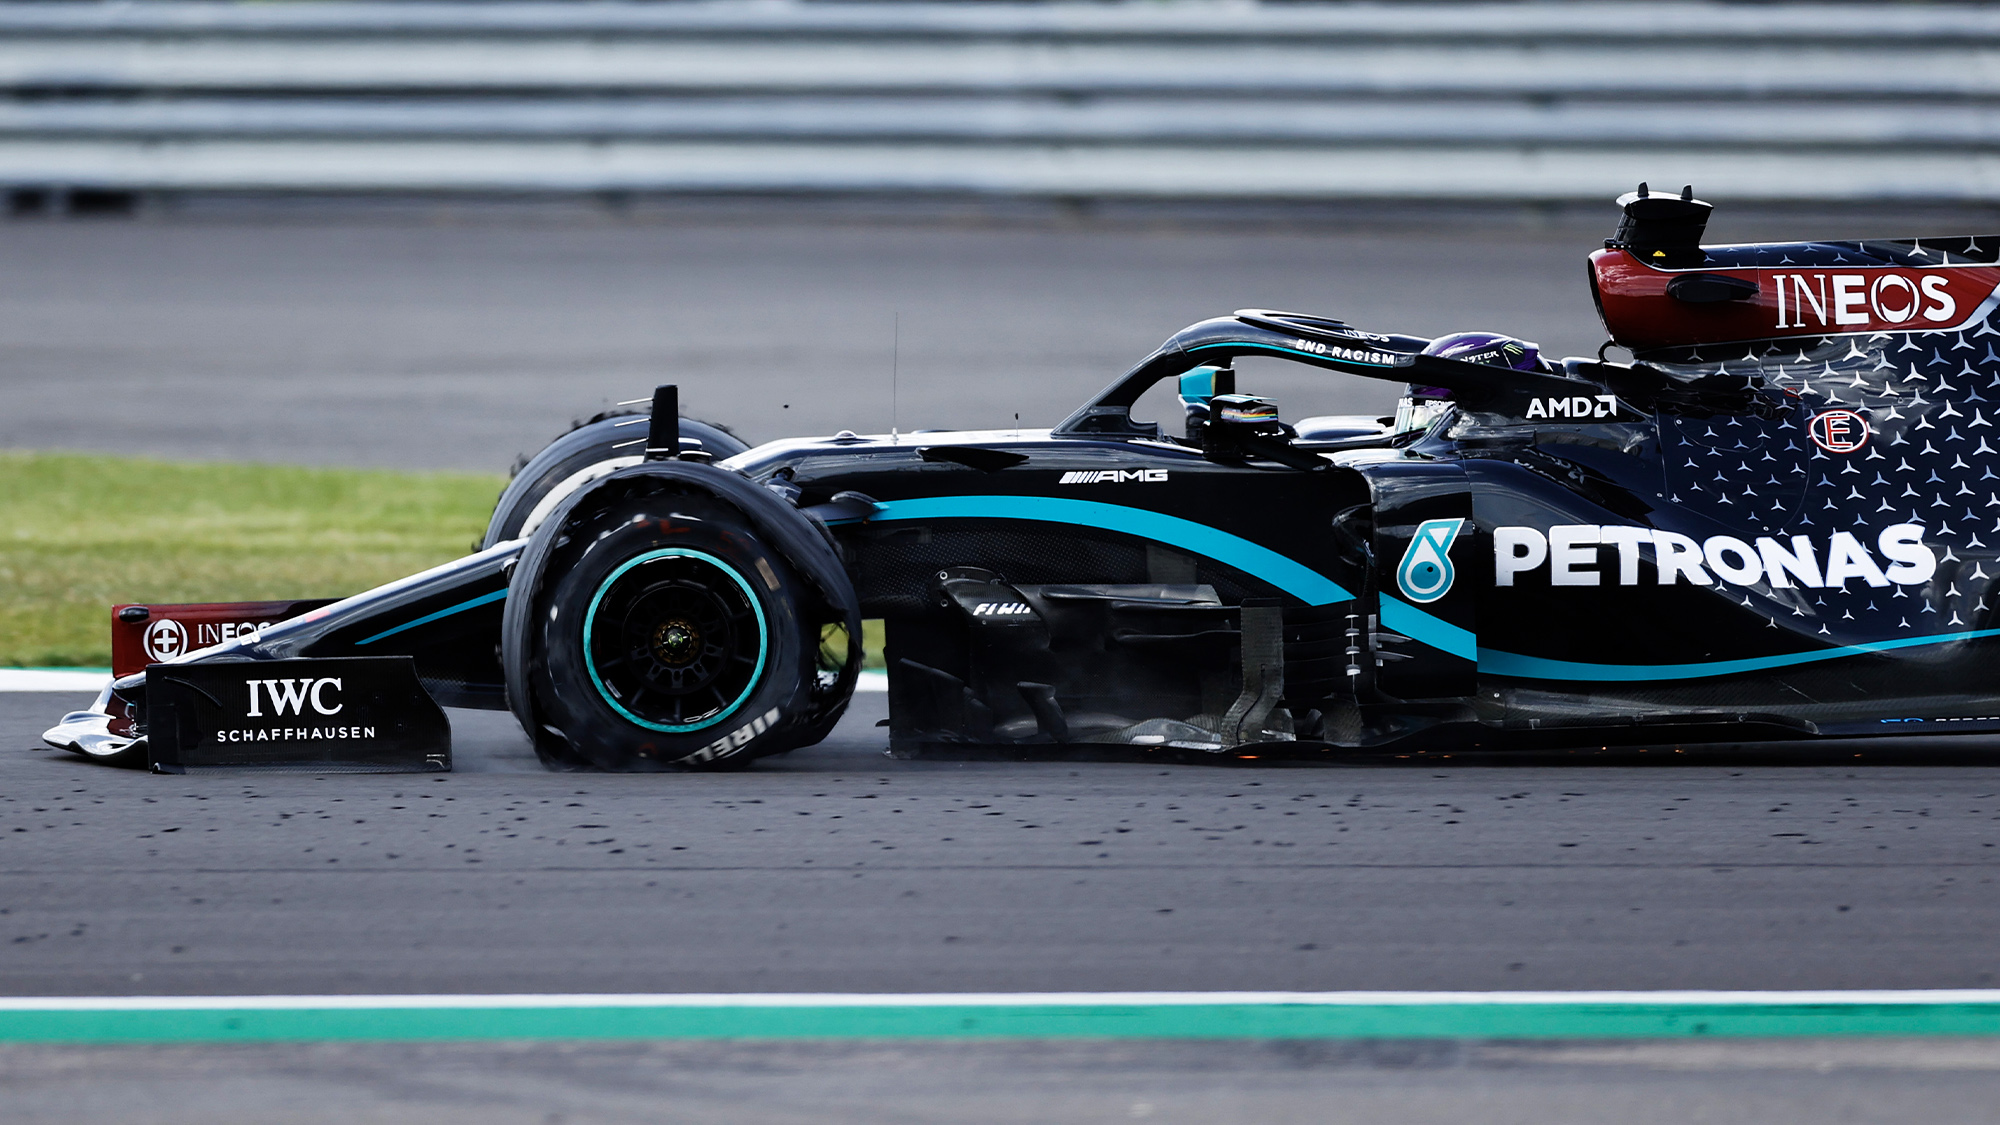 Lewis Hamilton's tyre fails on the final lap of the 2020 F1 British Grand Prix at Silverstone